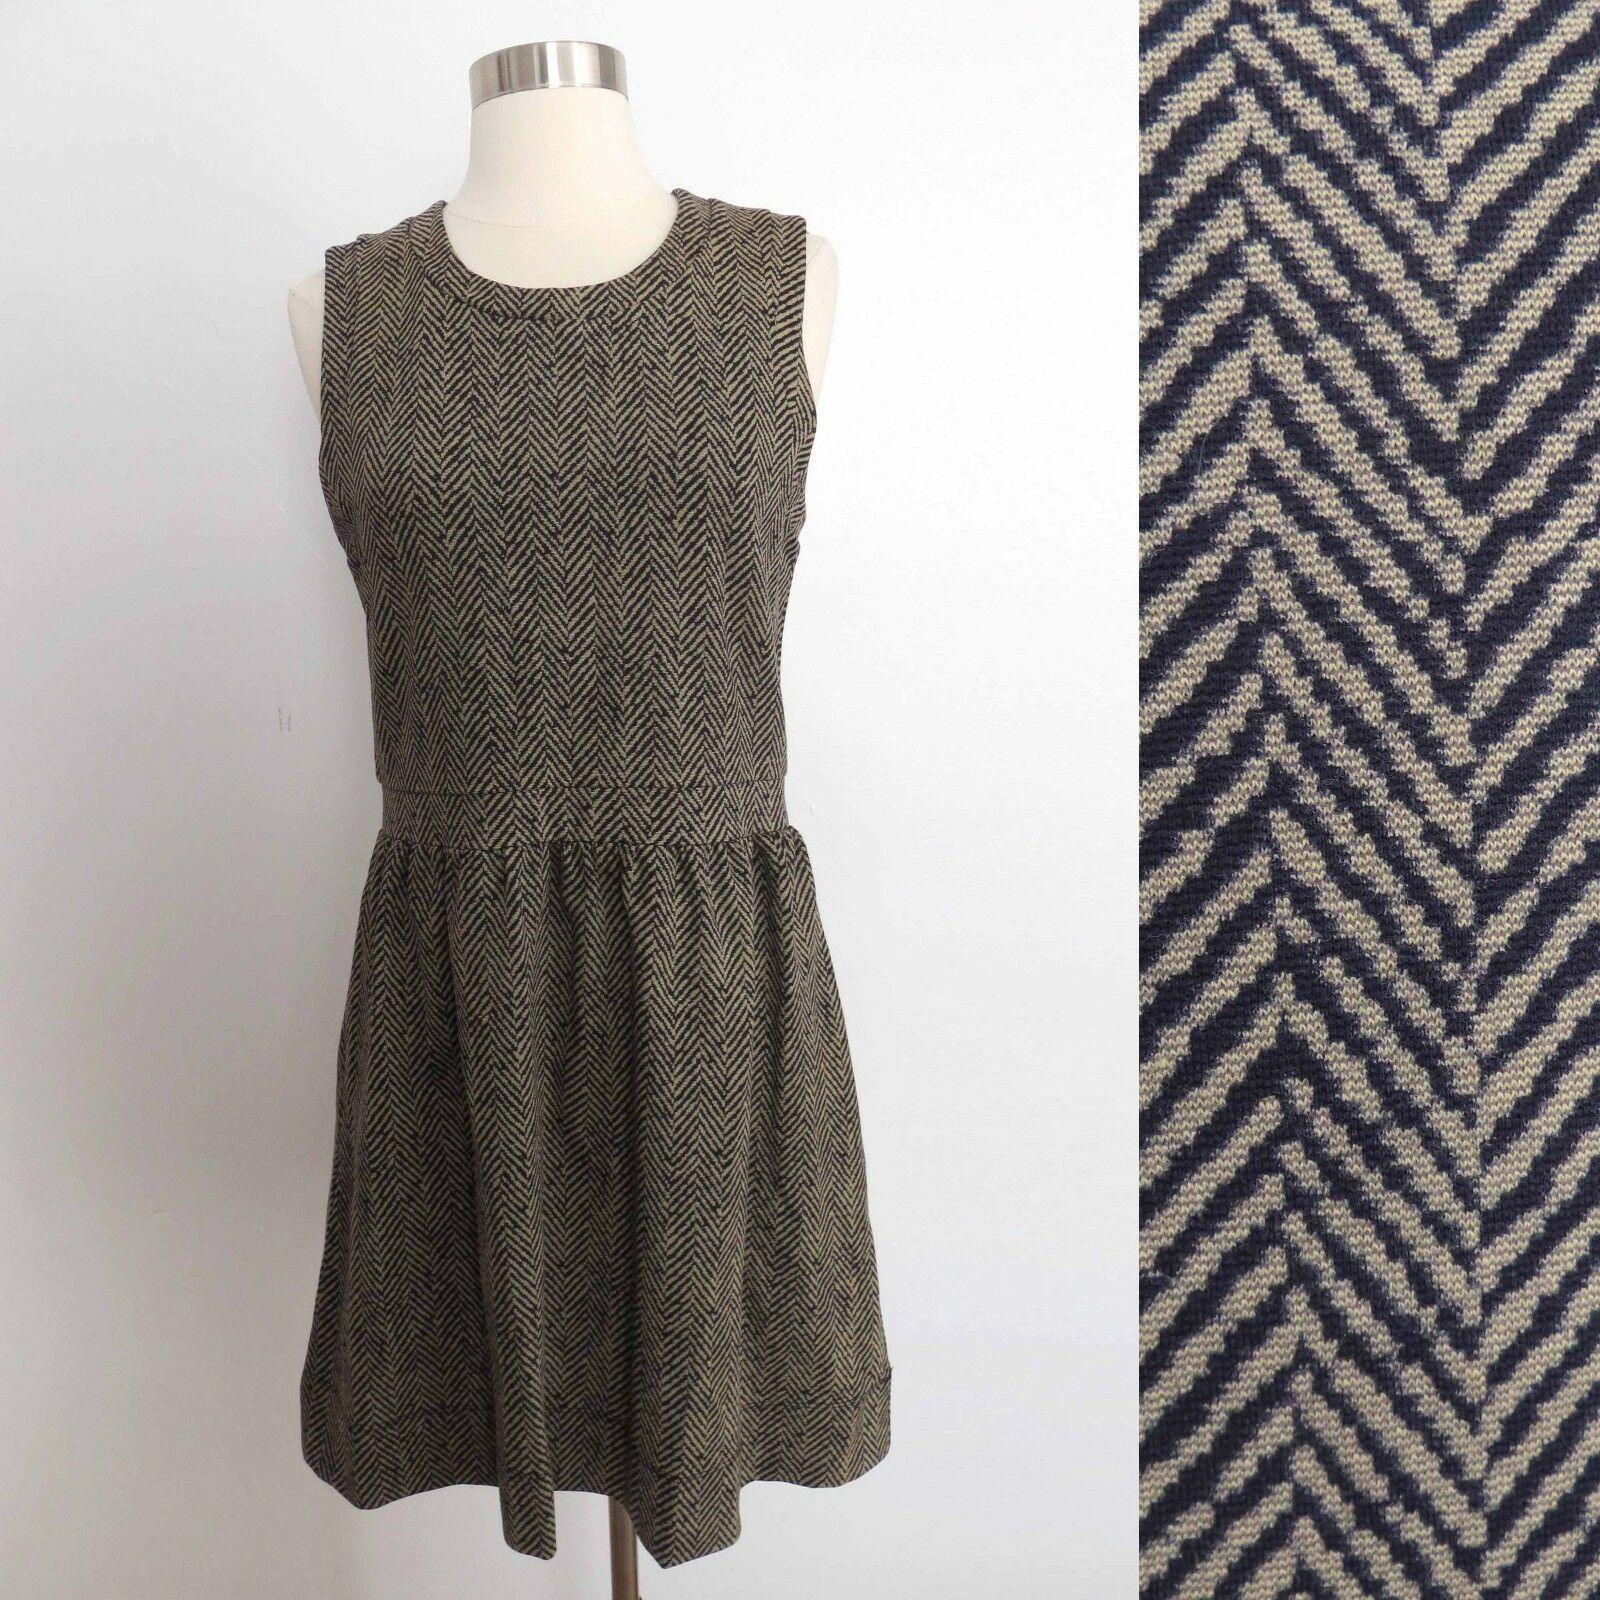 Primary image for NWT J. Crew size SMALL taupe beige stripe print sleeveless dress career cocktail